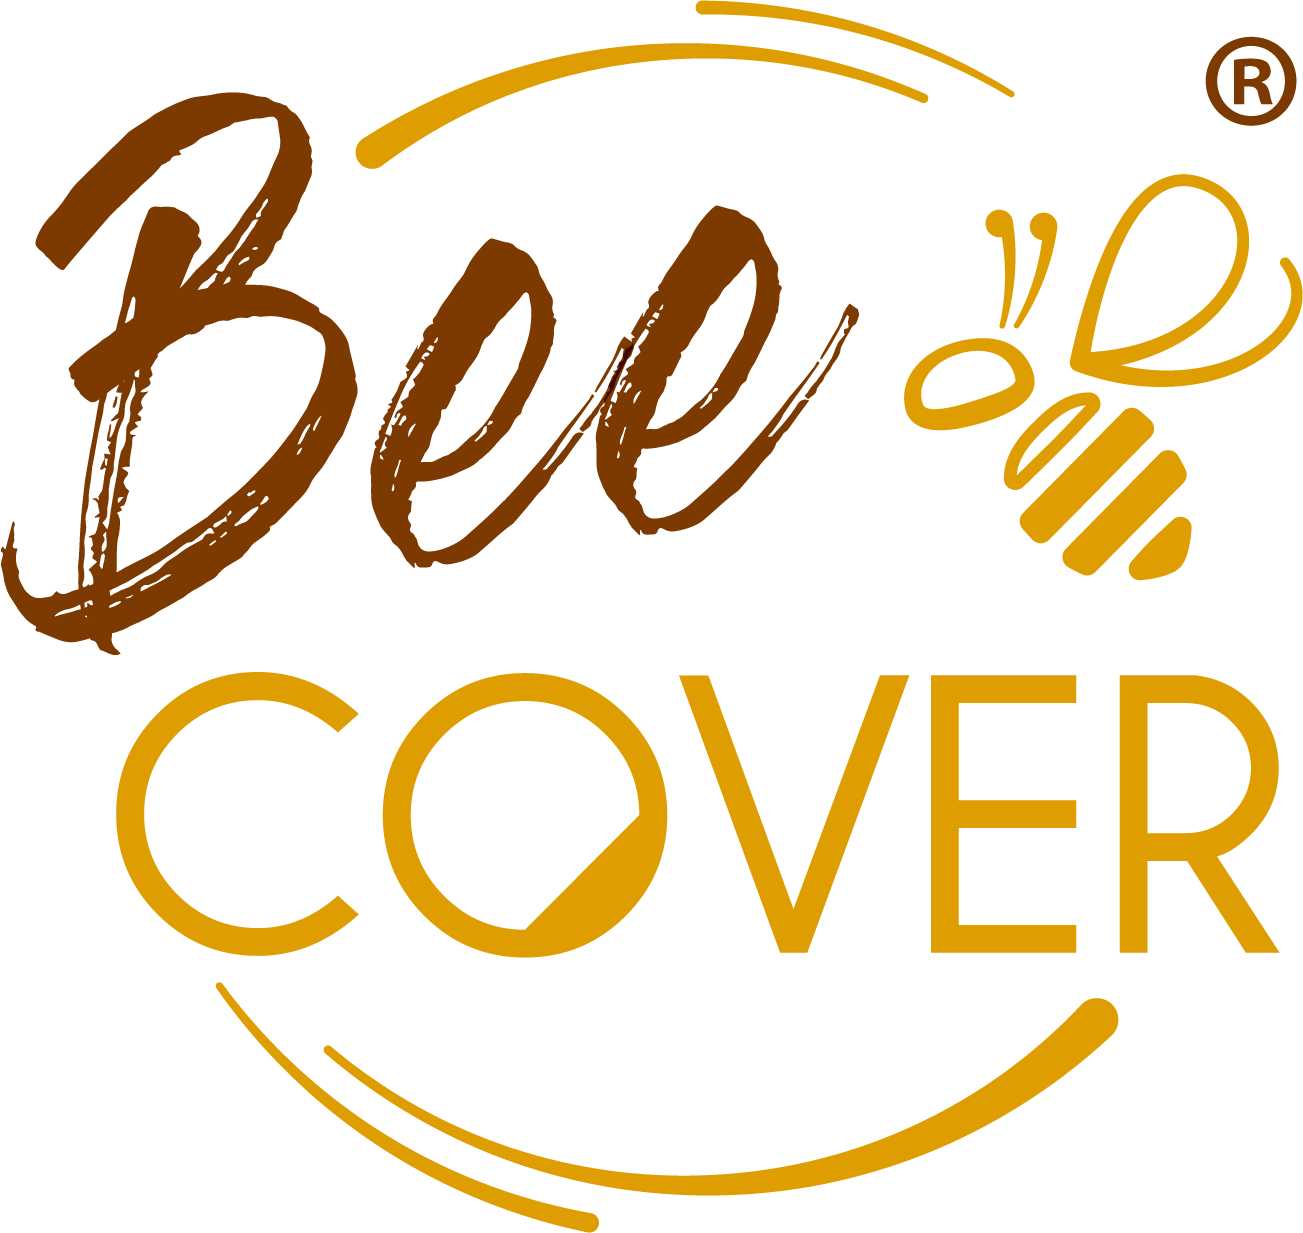 beecover emballage alimentaire cire d'abeille